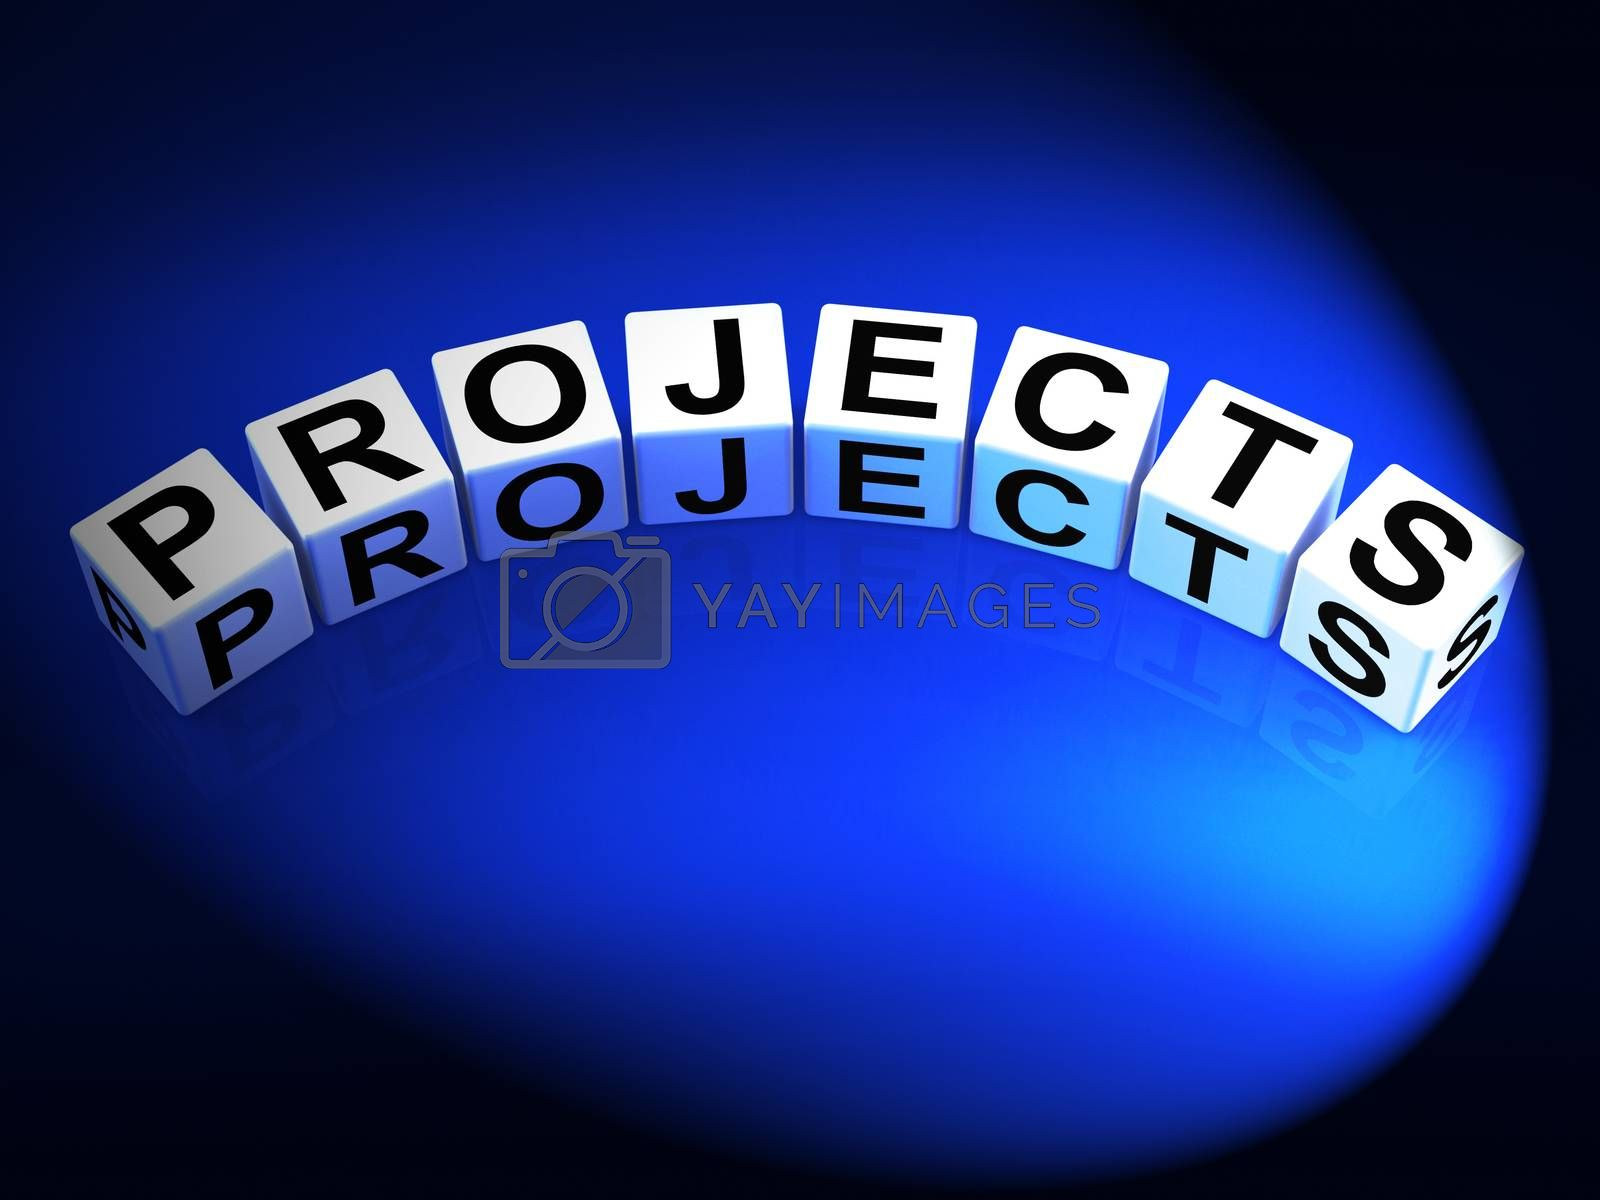 Projects Dice Represent Ideas activities Tasks and Enterprises by stuartmiles